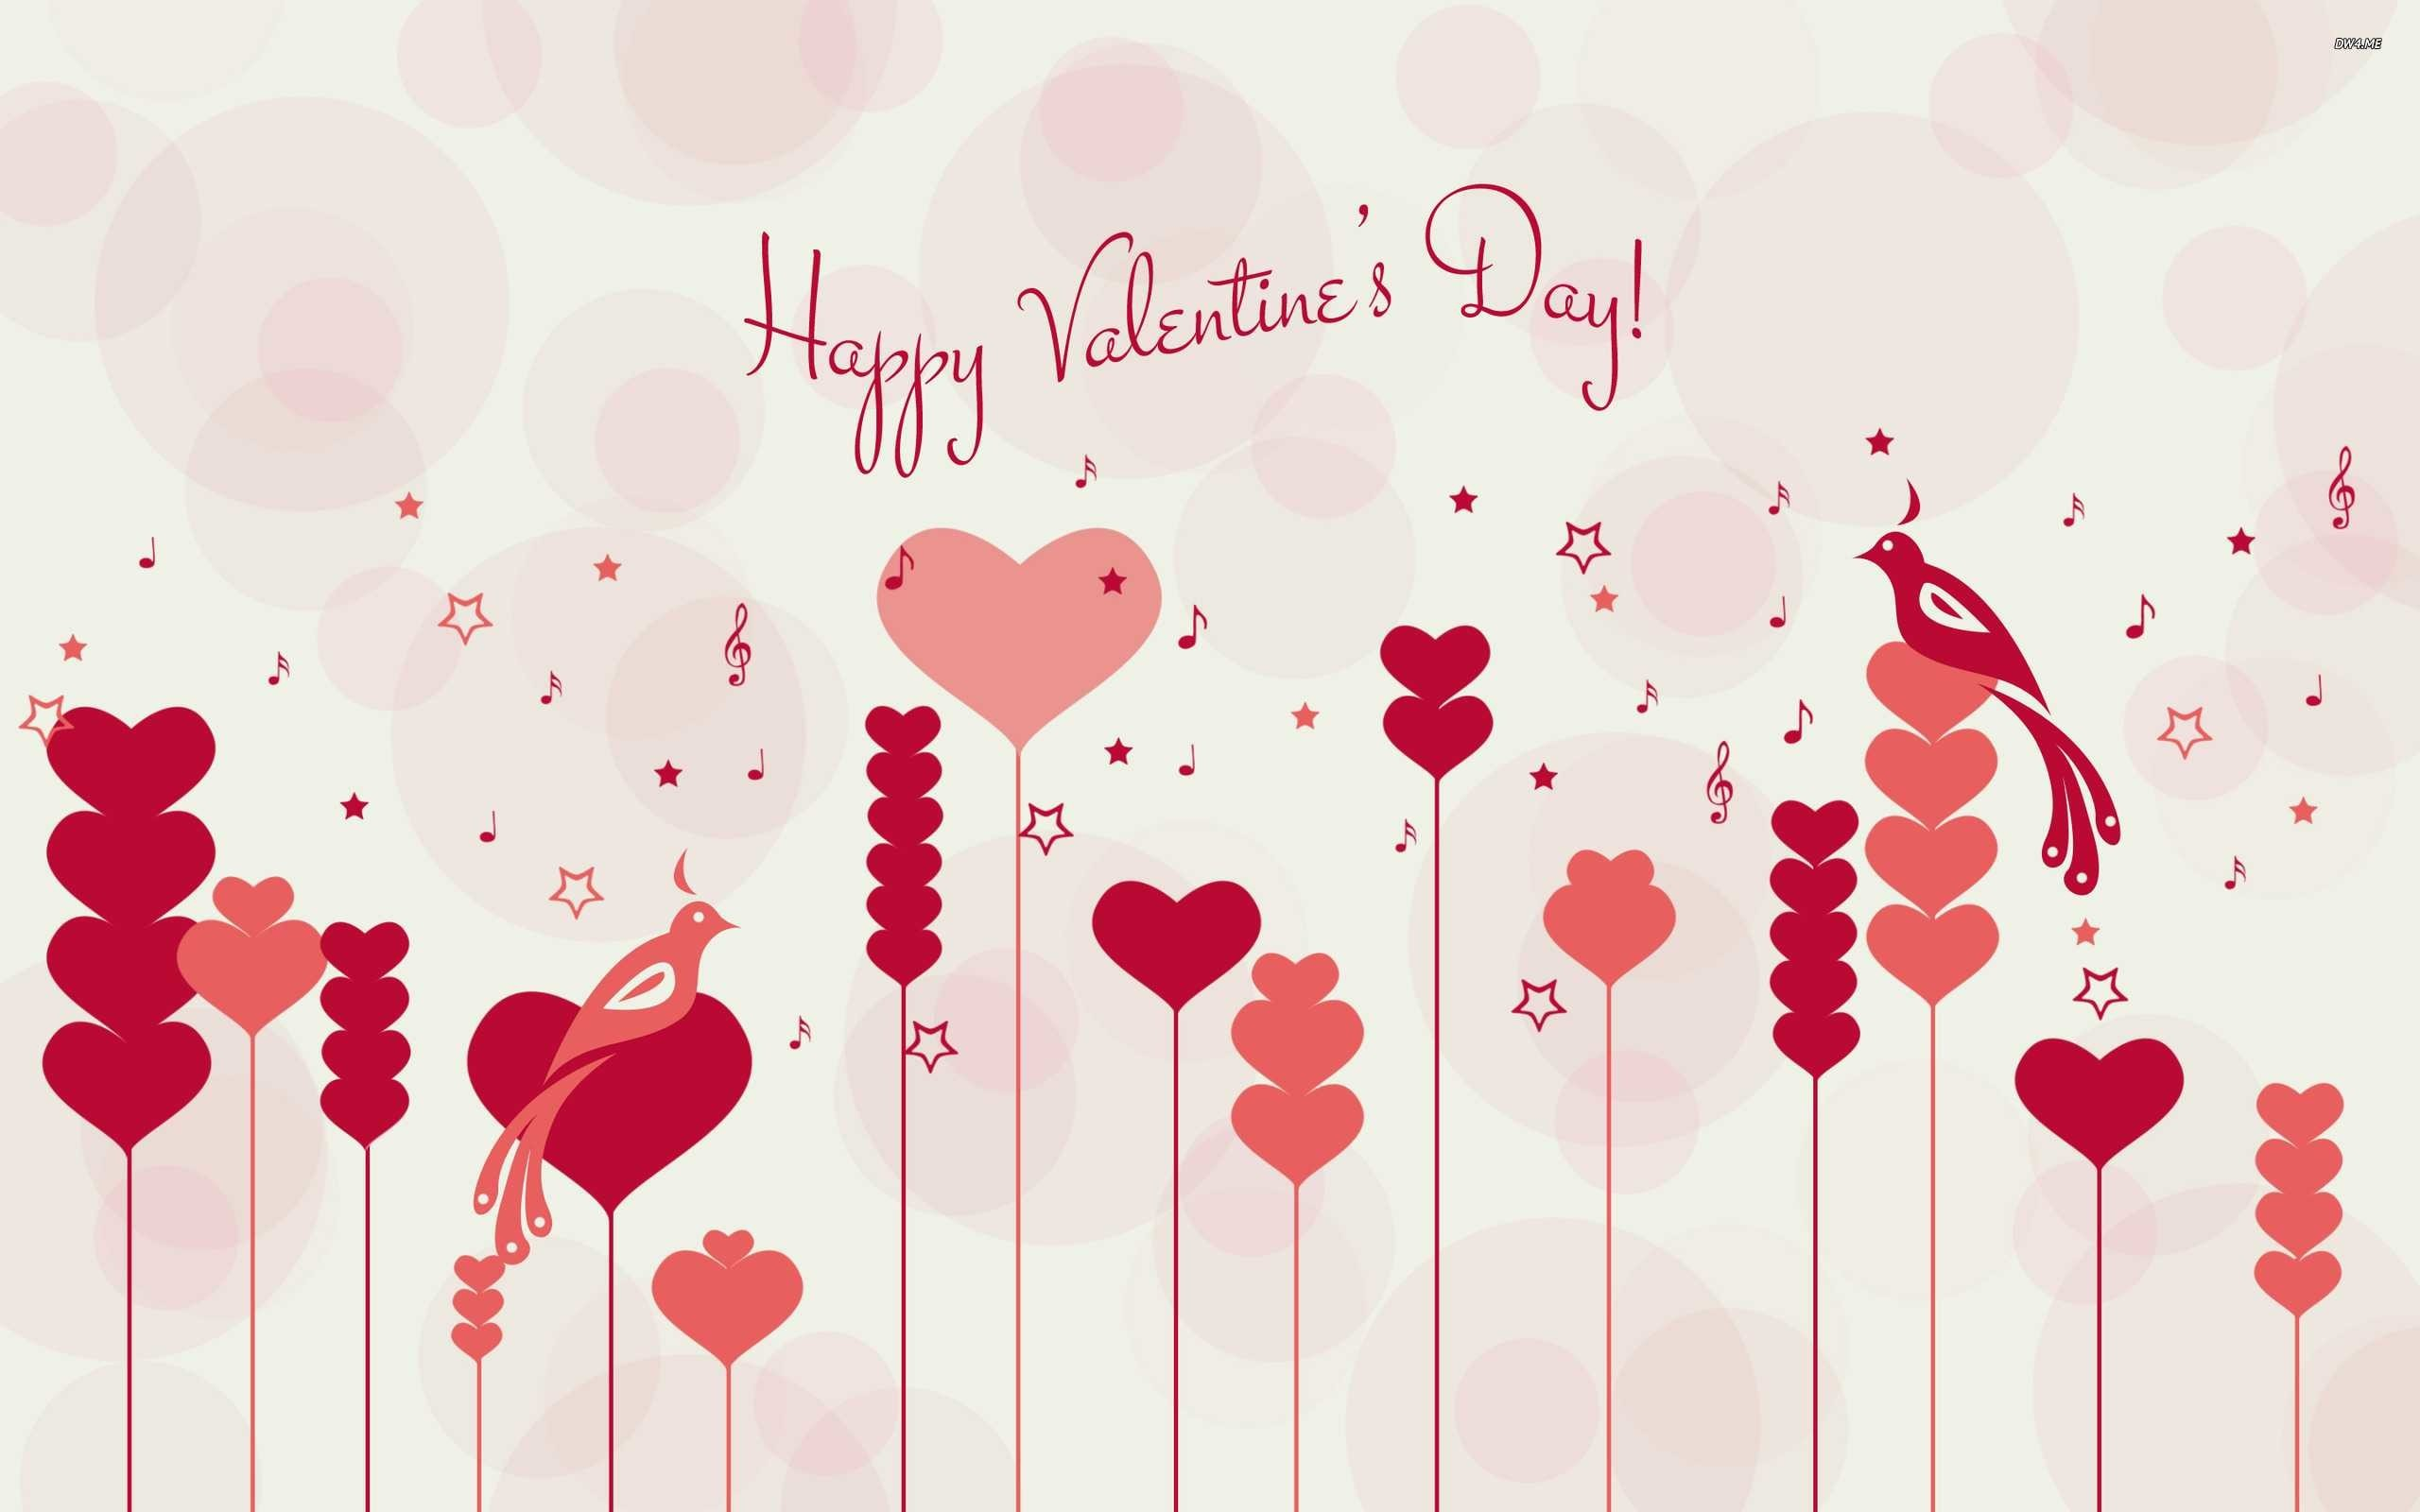 Valentines Day Wallpapers For Your Desktop 71 Images